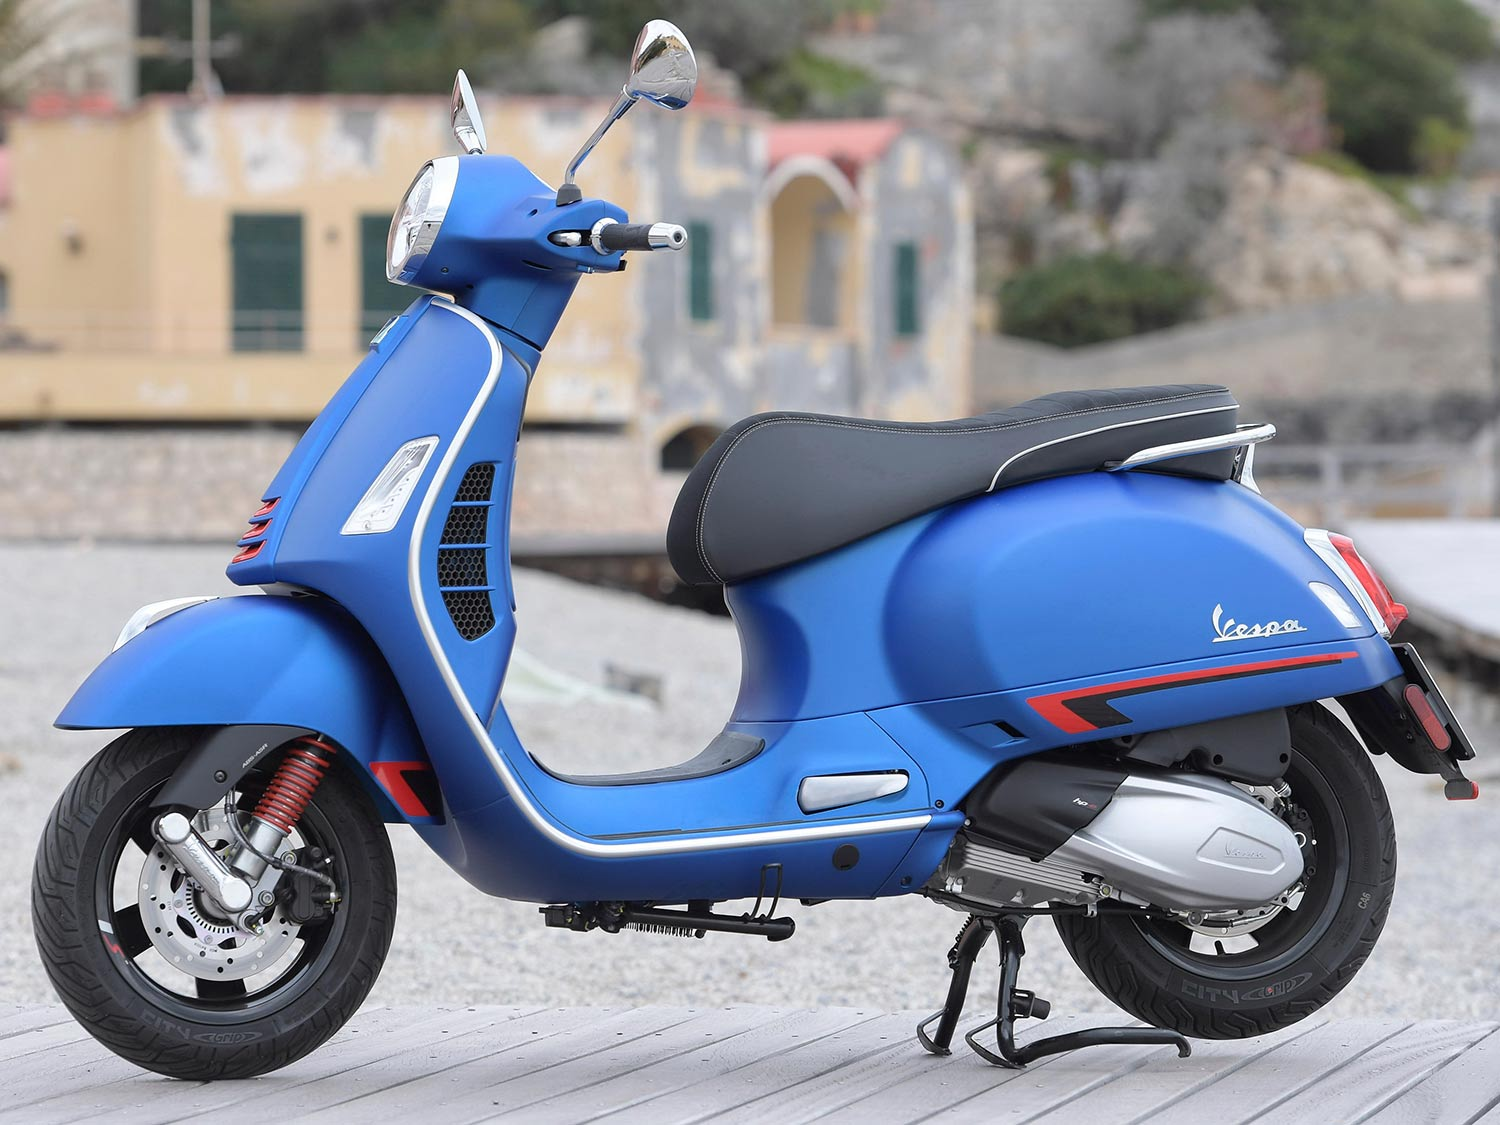 2019 Vespa 300 Gts First Ride Cycle World